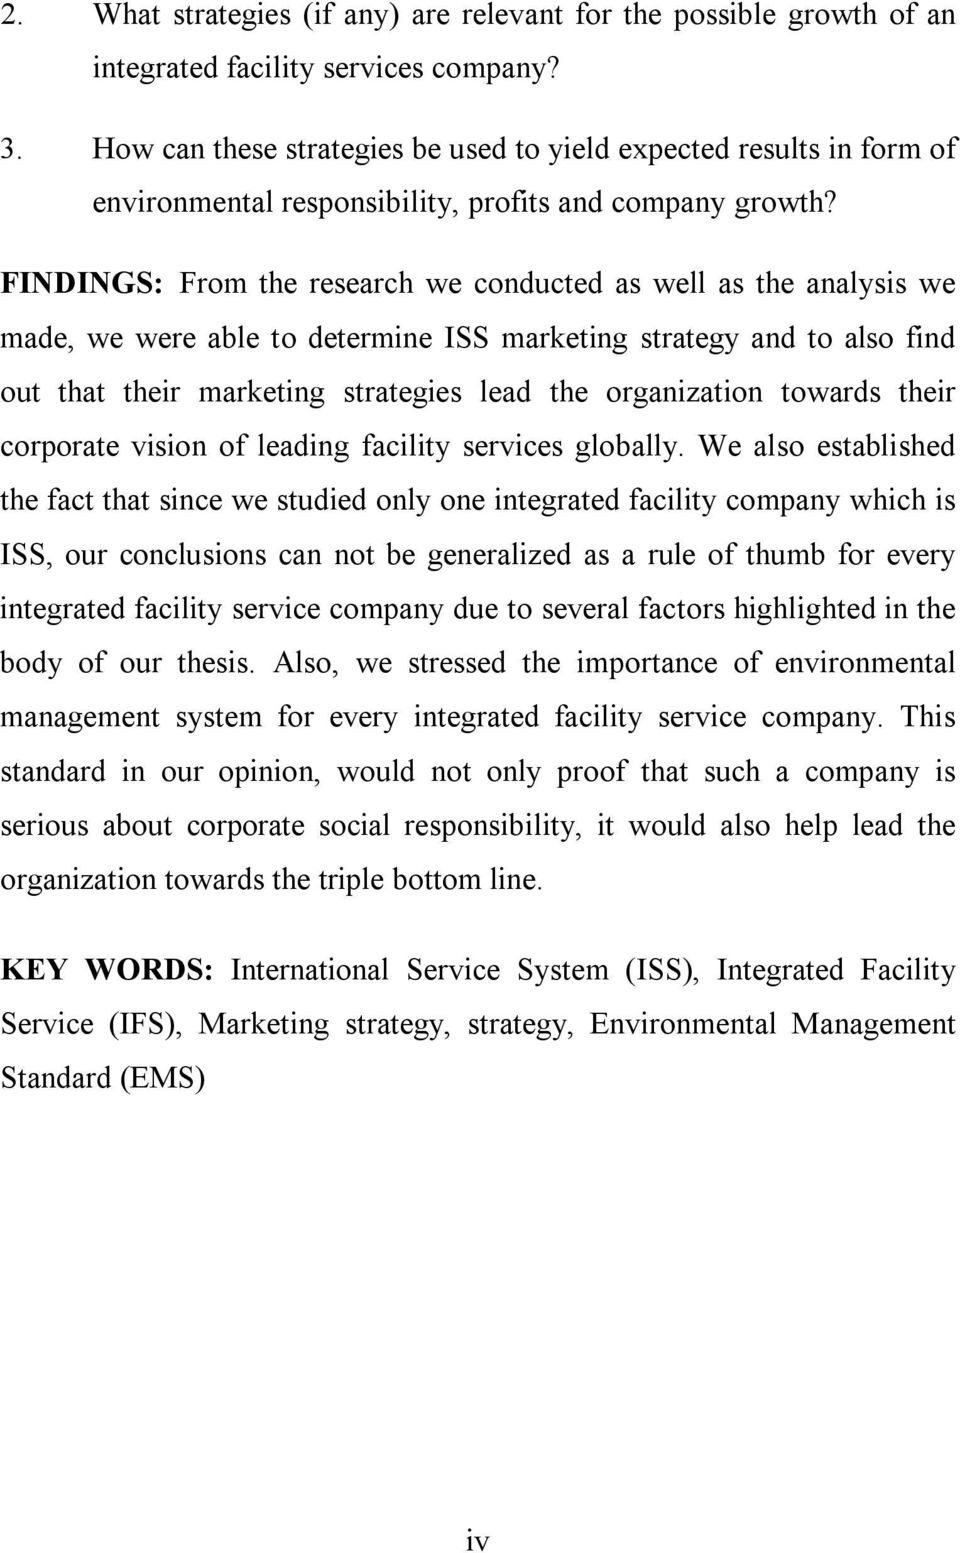 FINDINGS: From the research we conducted as well as the analysis we made, we were able to determine ISS marketing strategy and to also find out that their marketing strategies lead the organization